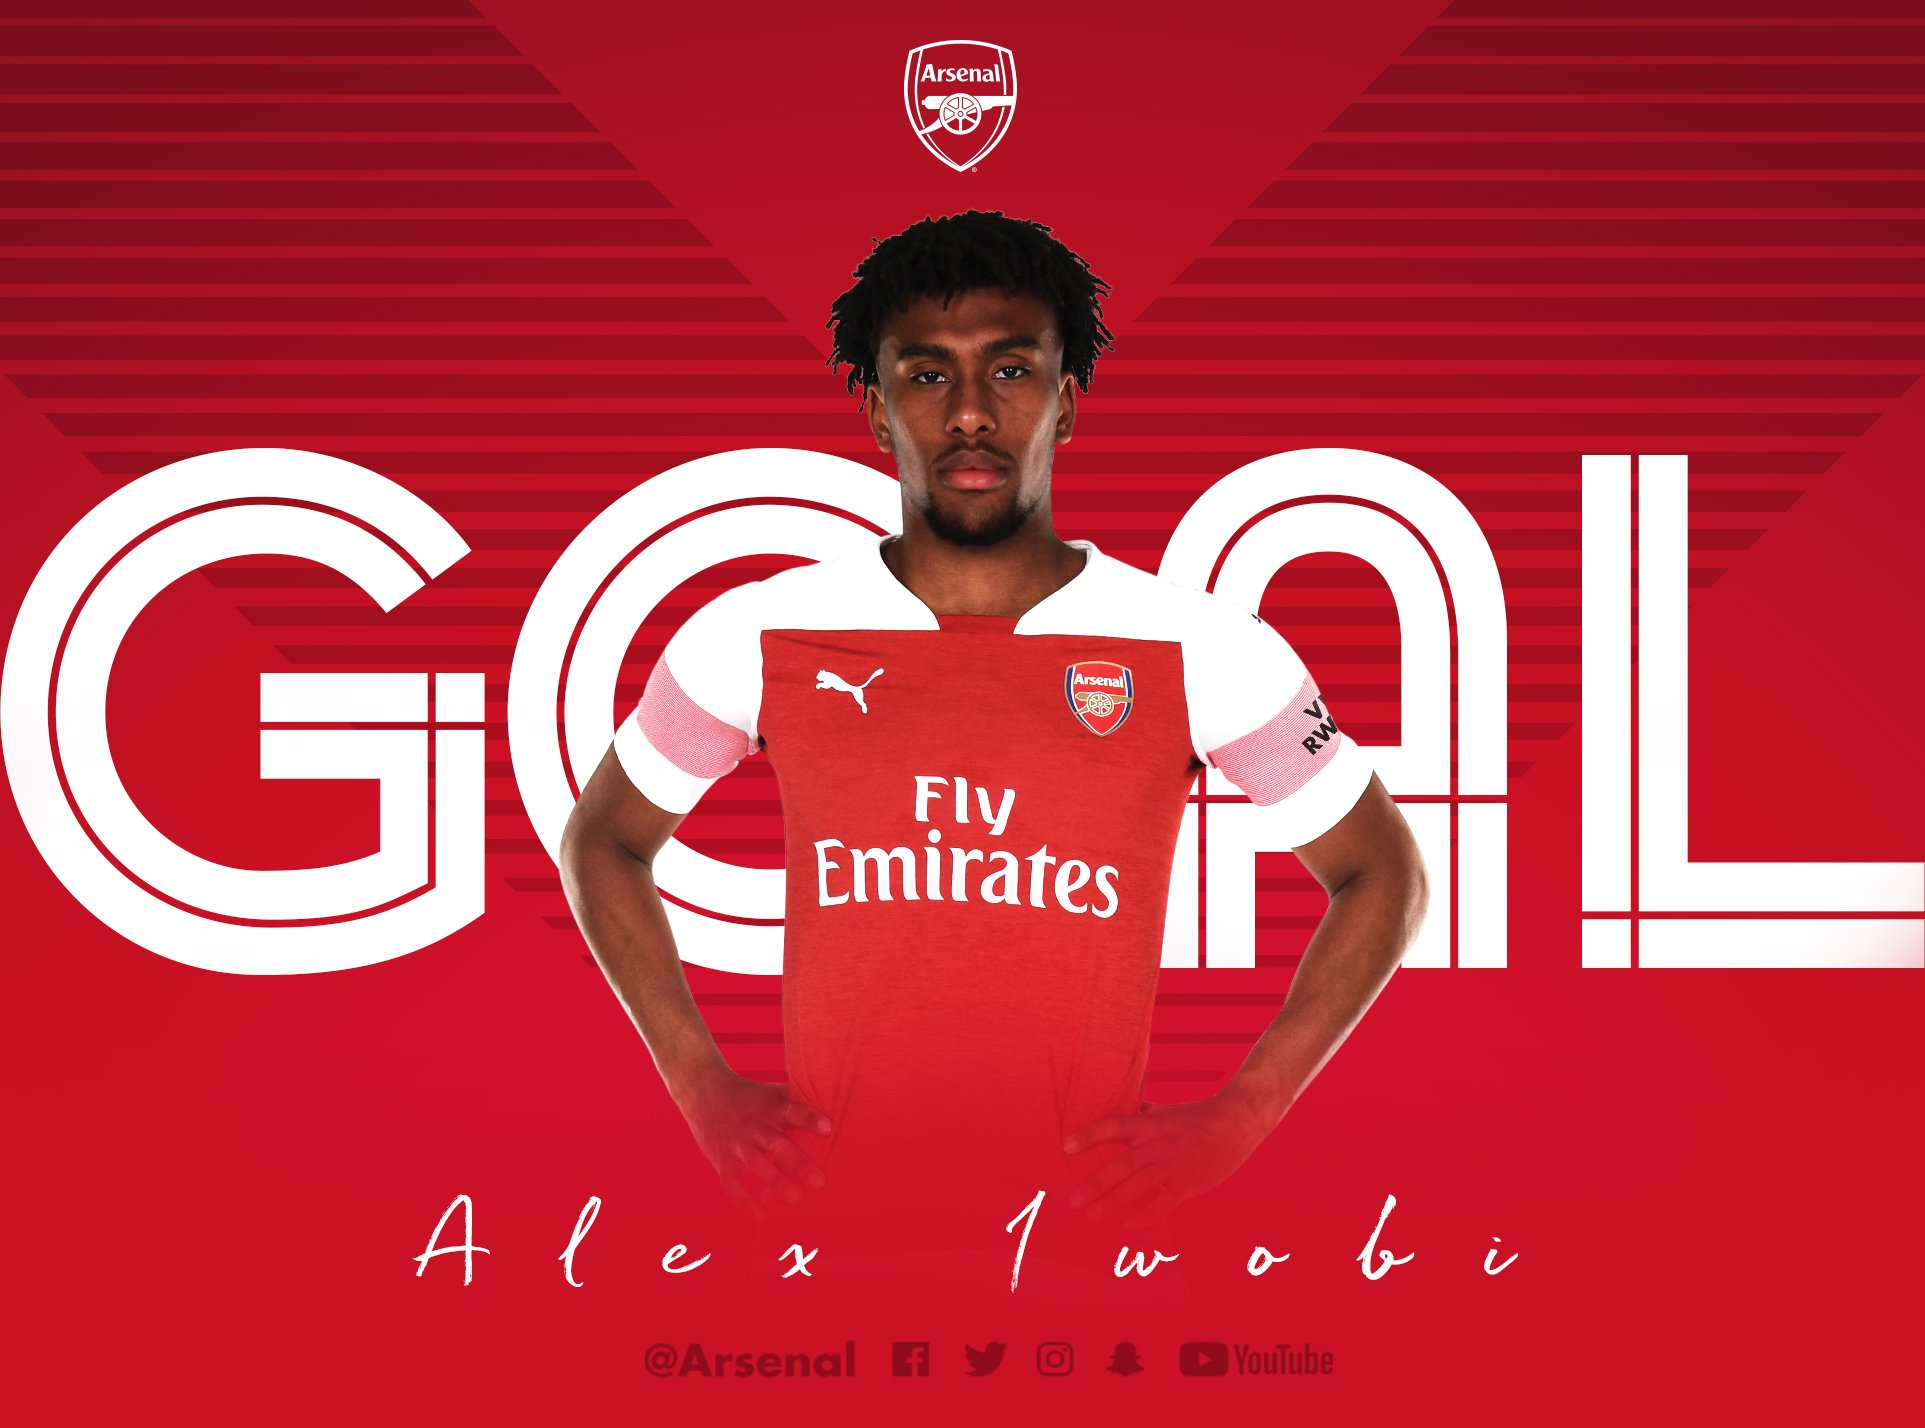 #BIG17!!!!!!  #CHEARS �� 2-2 �� (41) https://t.co/yGIv8mQxFy